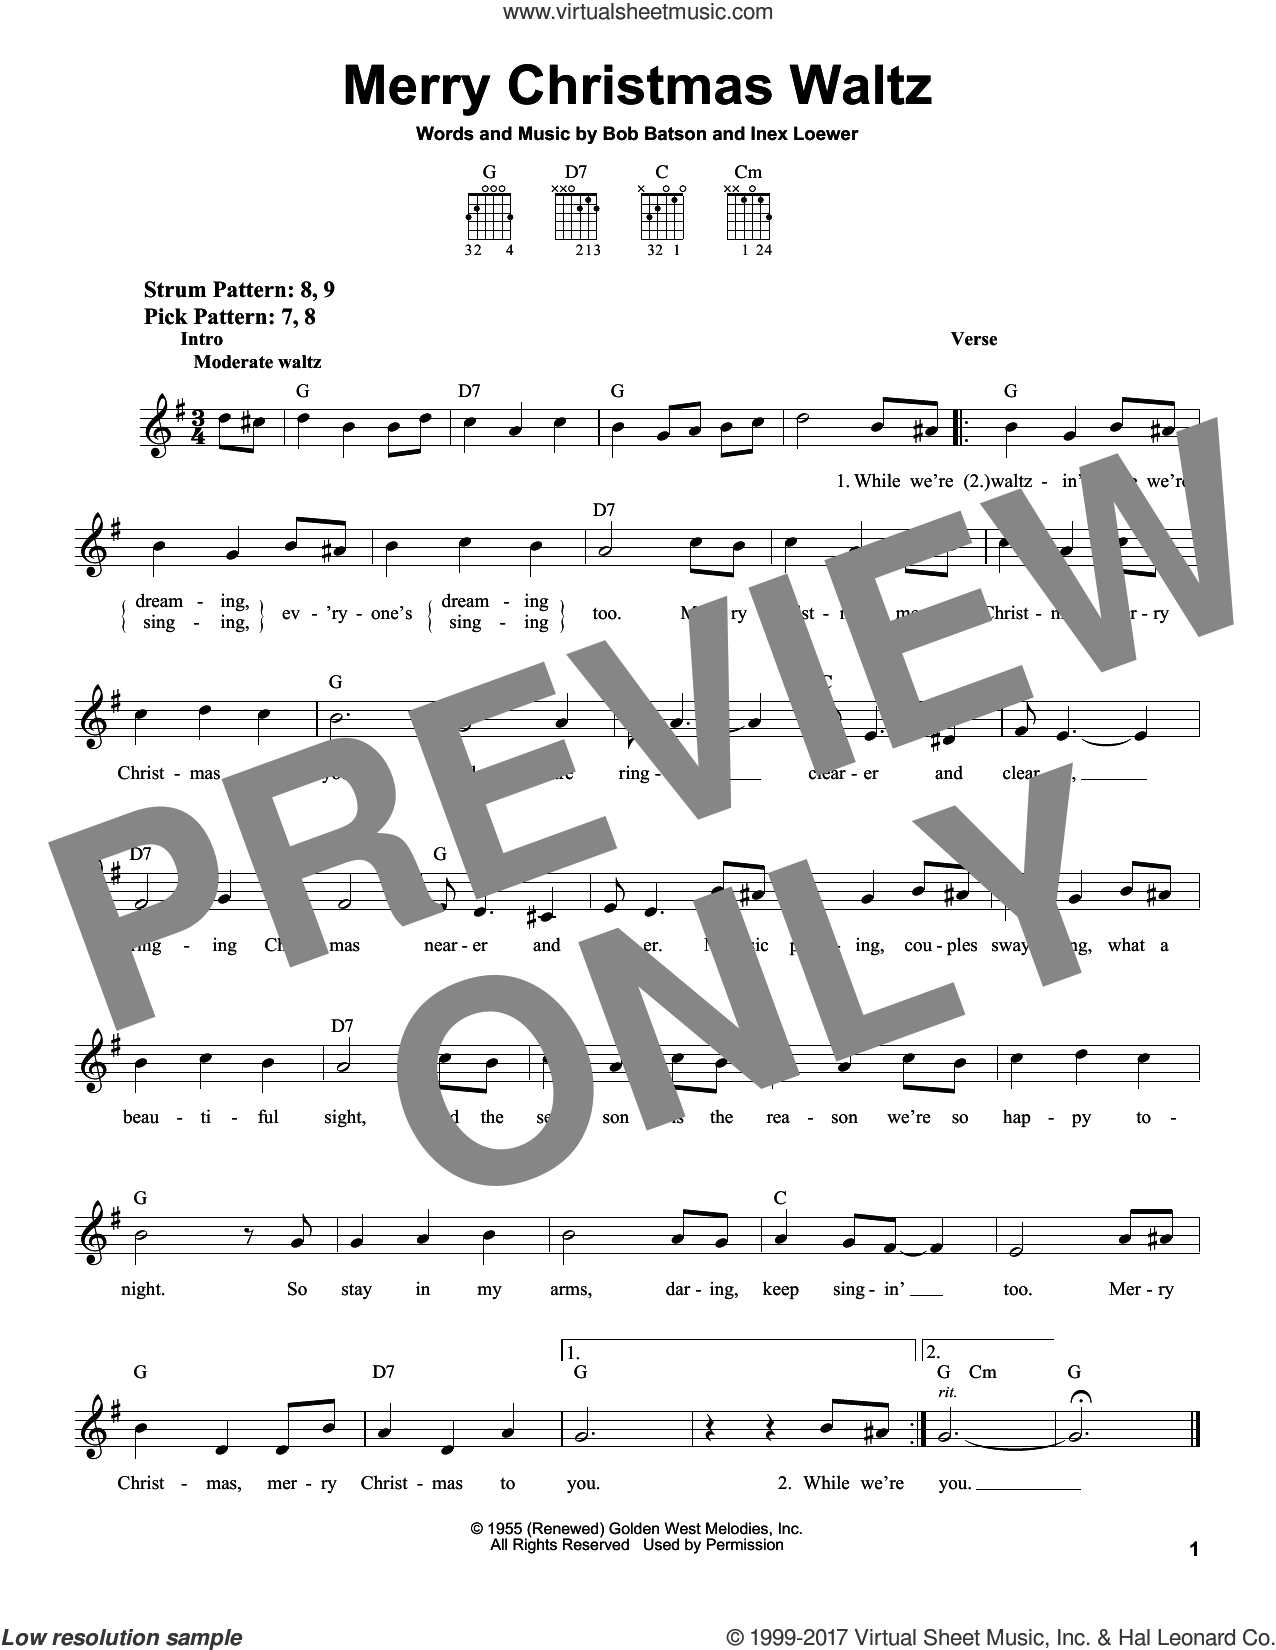 Merry Christmas Waltz sheet music for guitar solo (chords) by Inez Loewer and Bob Batson, easy guitar (chords). Score Image Preview.